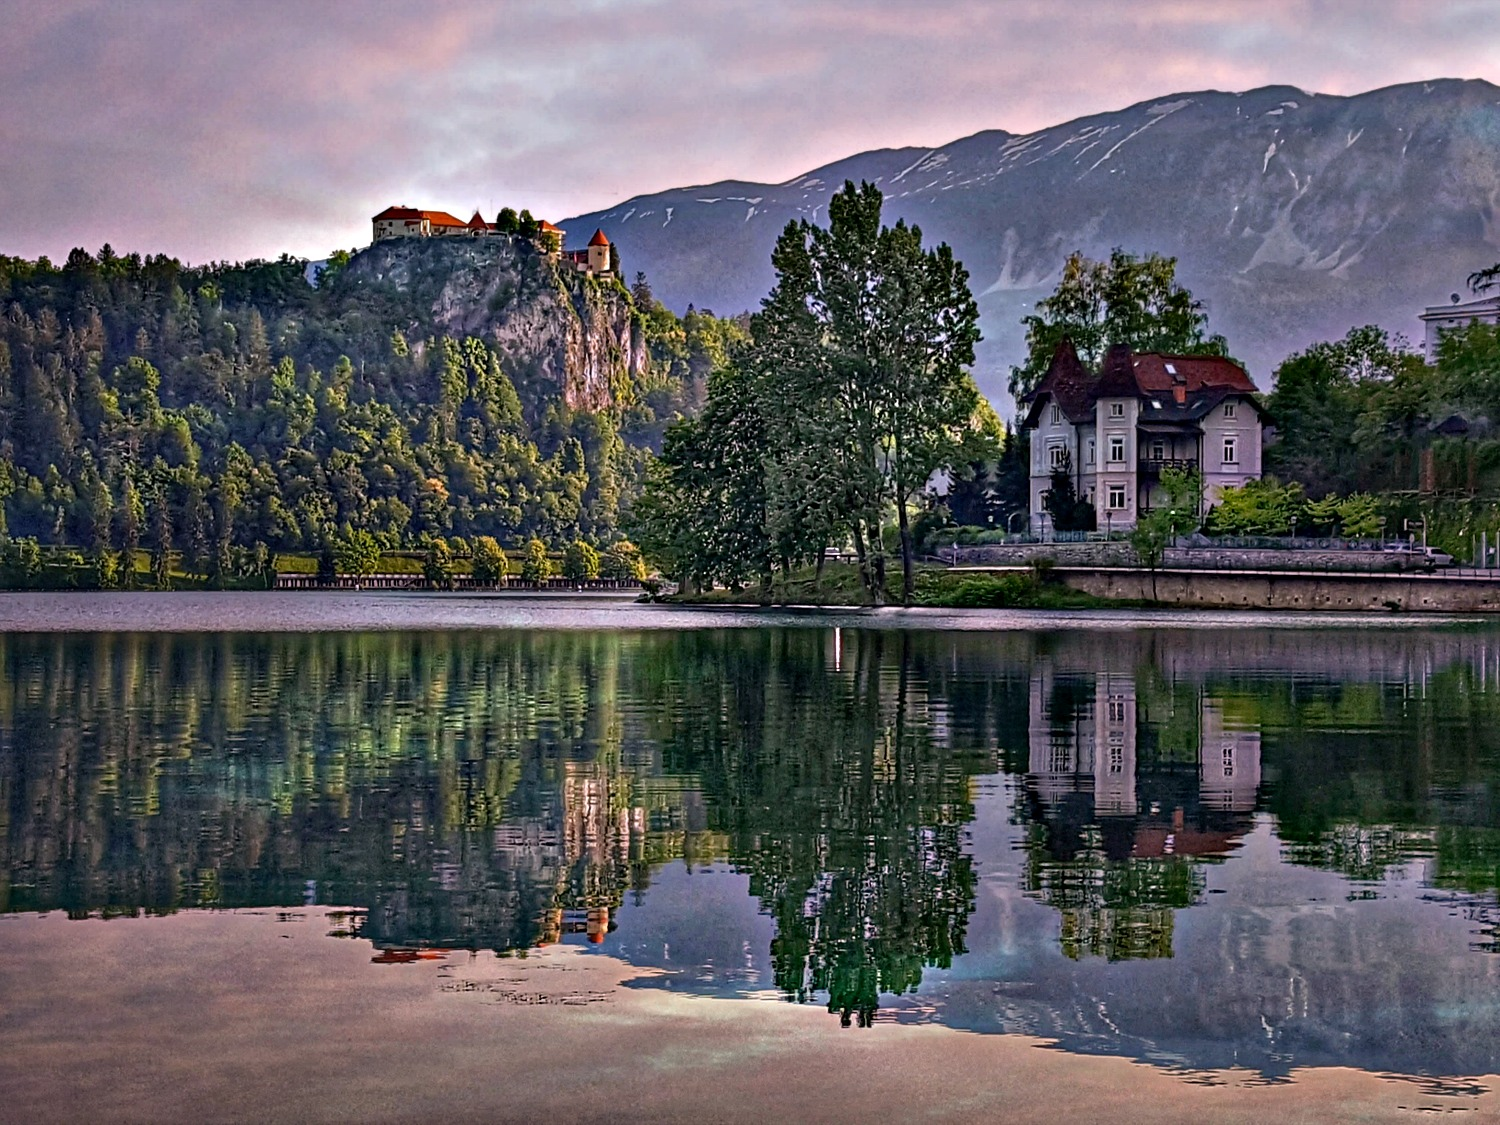 Lake Bled Castle and its reflection.